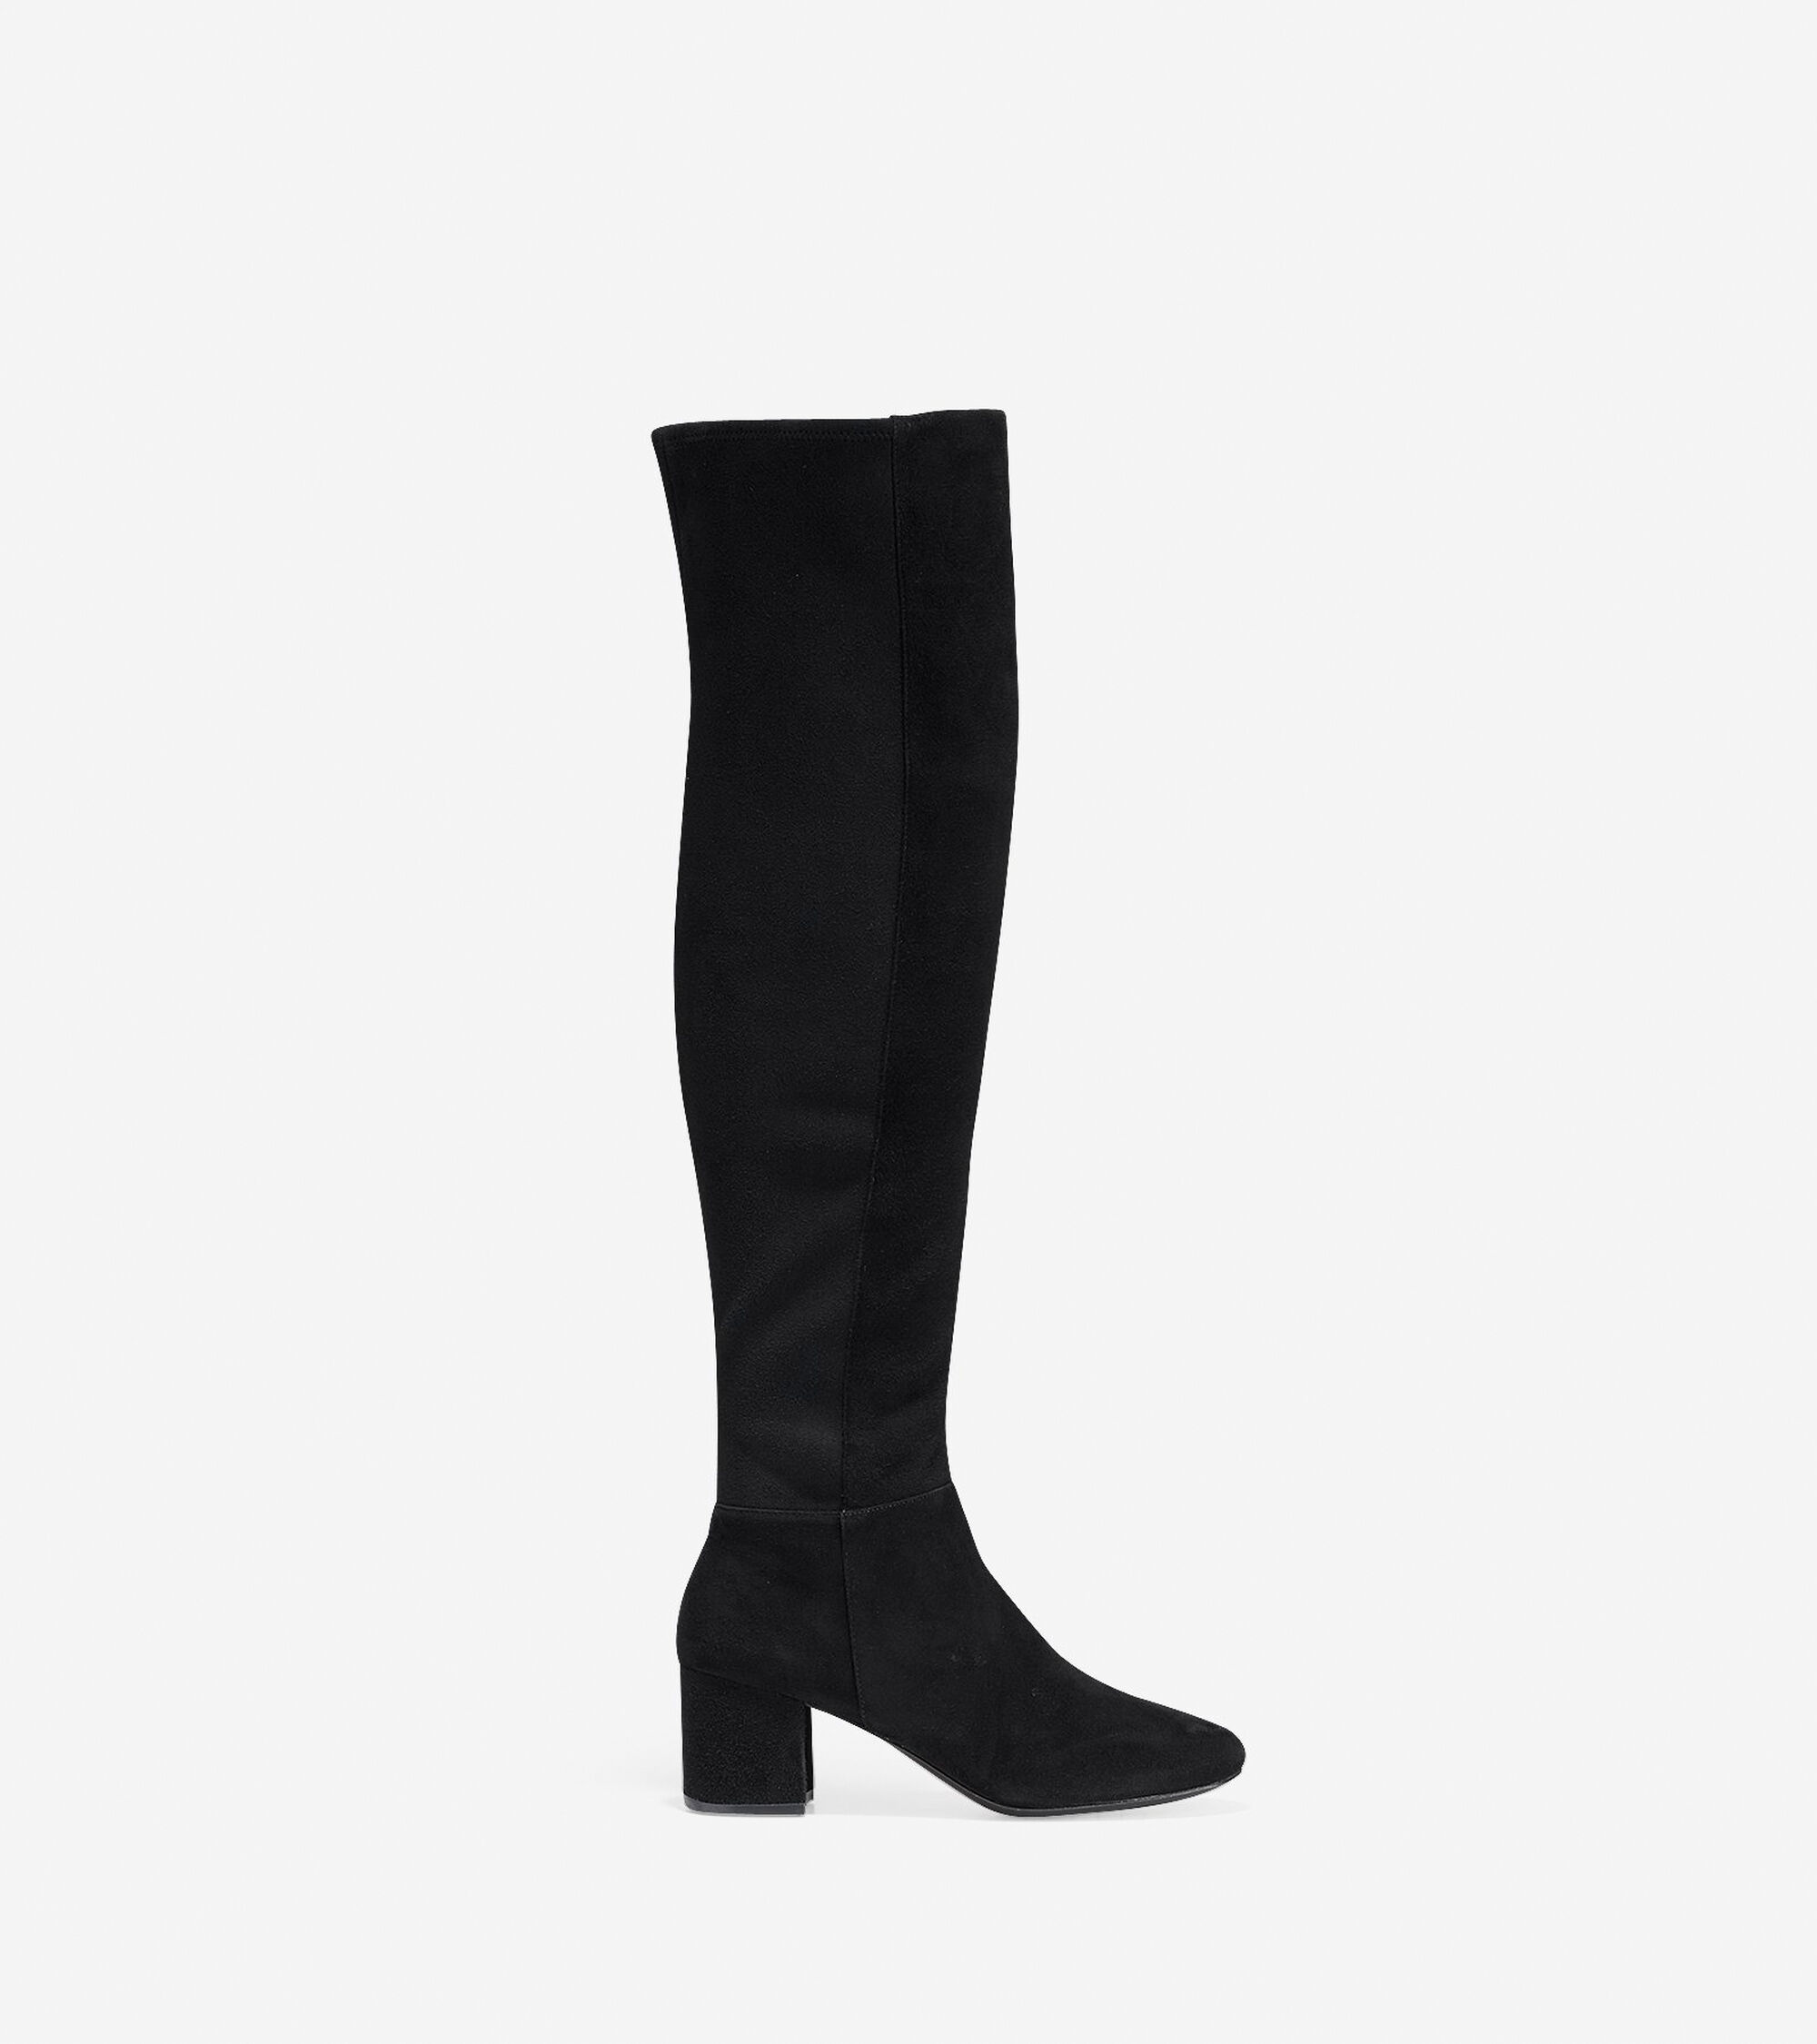 d9128b117f57 Women s Elnora Over The Knee Boots 60mm in Black